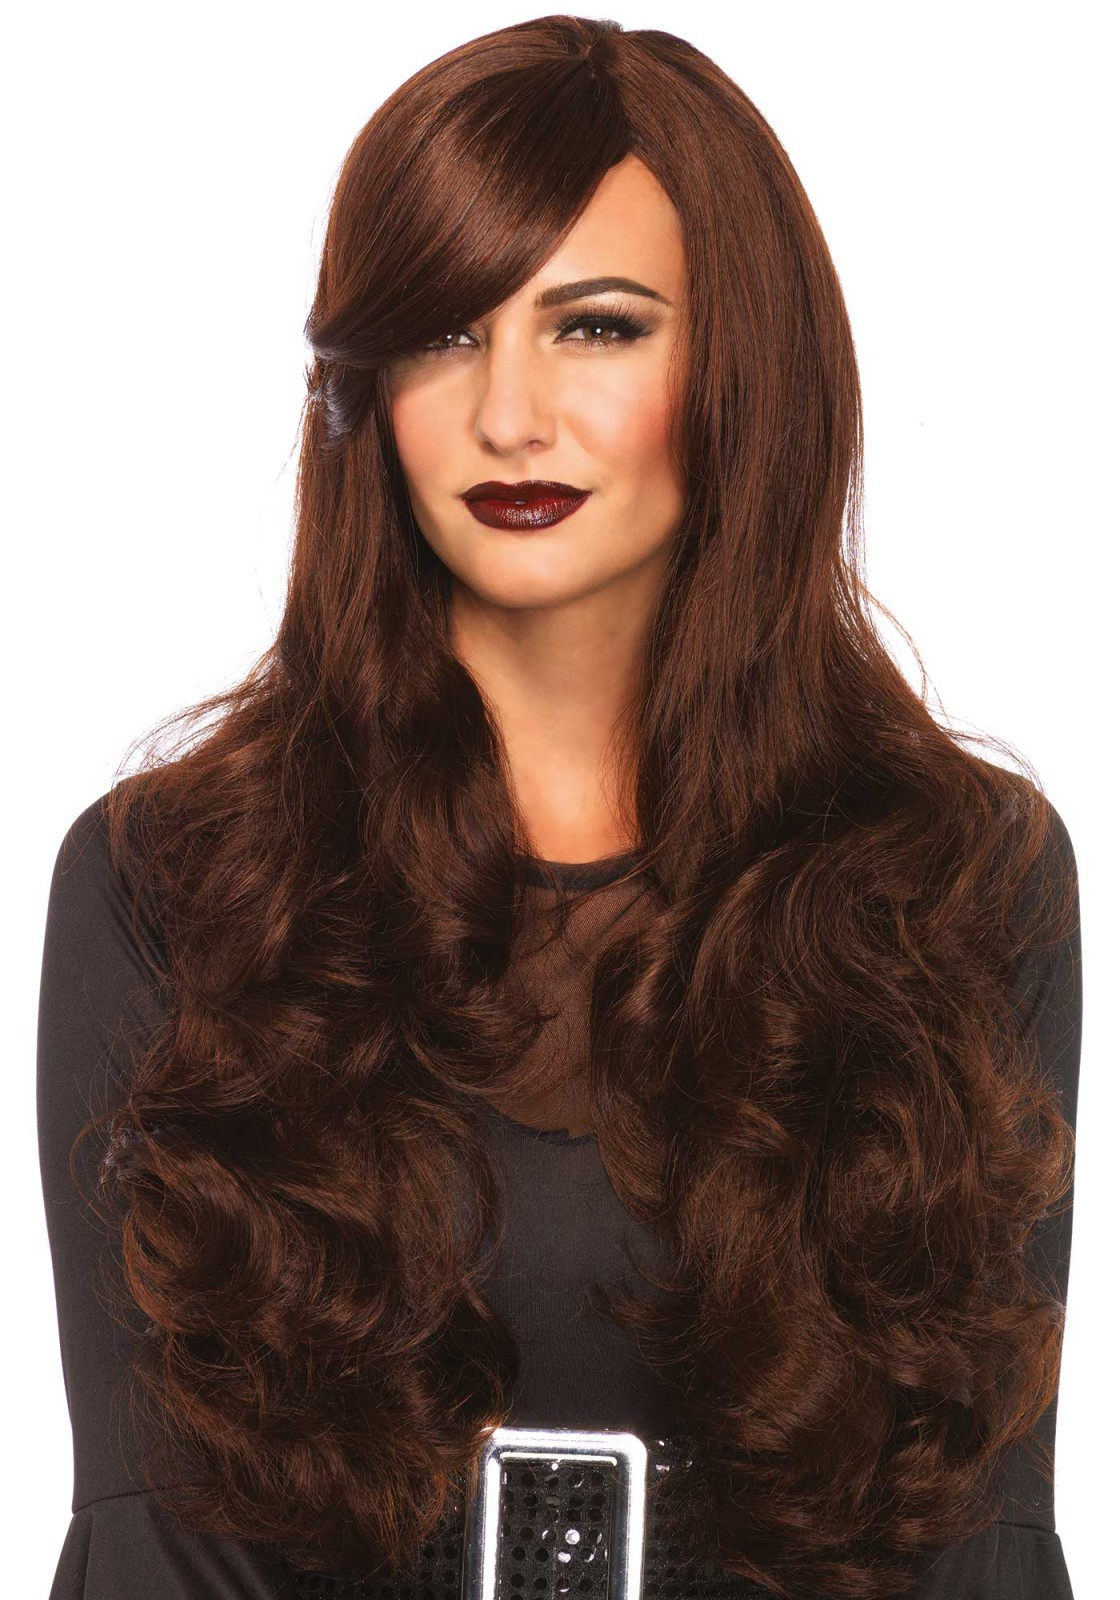 Costume Long Wavy Wig In Red, Silver Grey Or Brown (Color: (B/G/R): Brown)